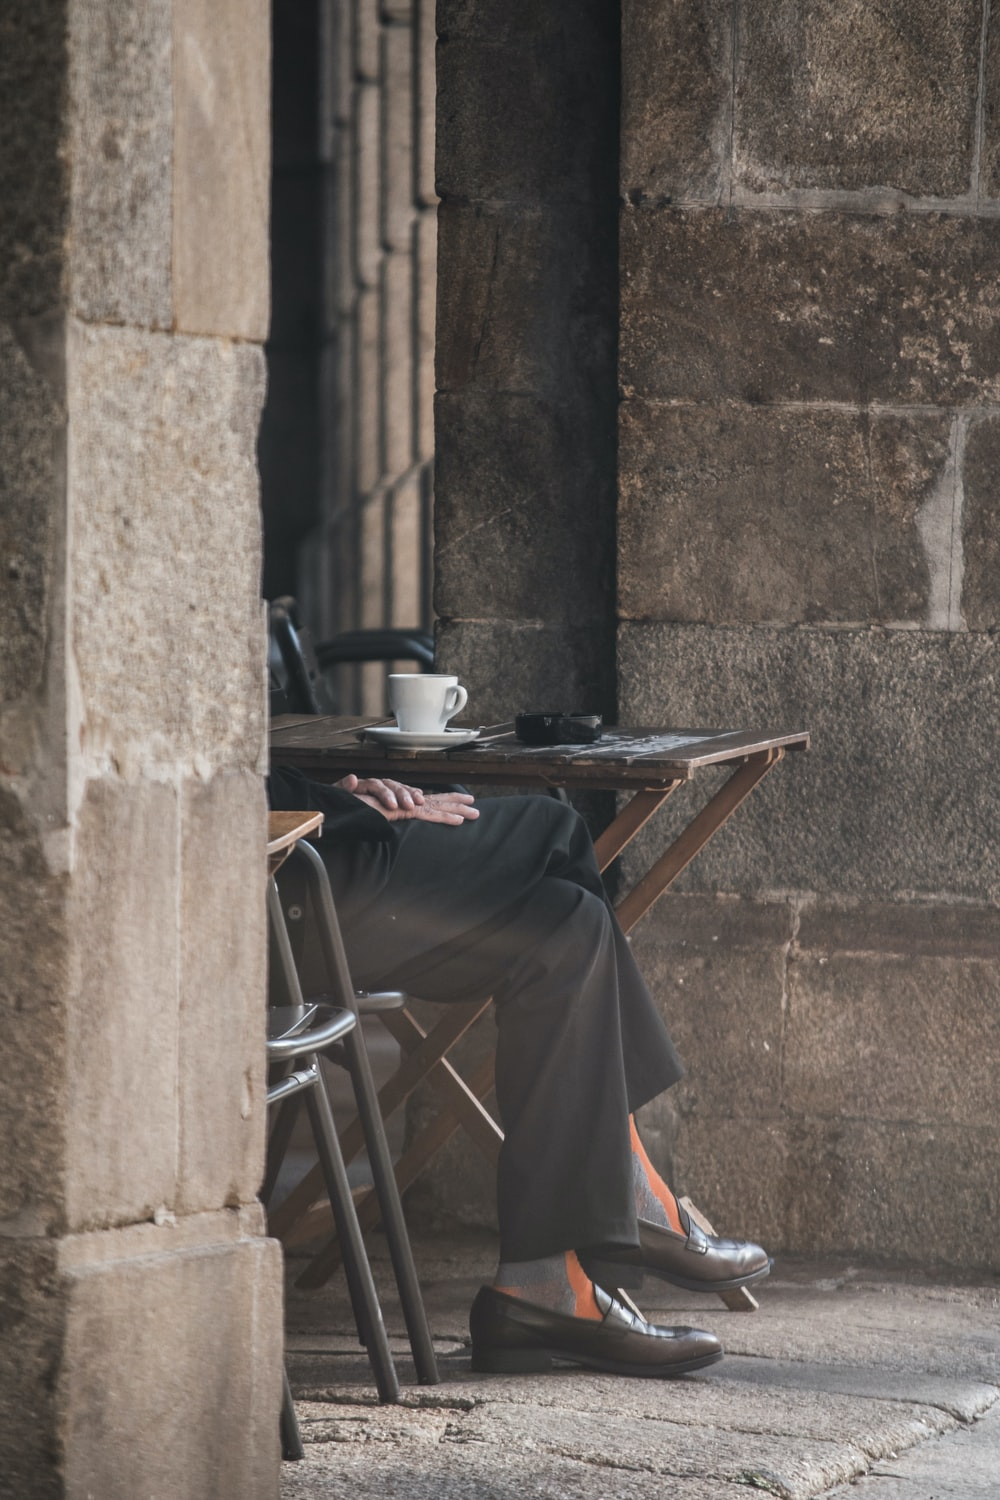 black and gray folding table beside brown concrete wall